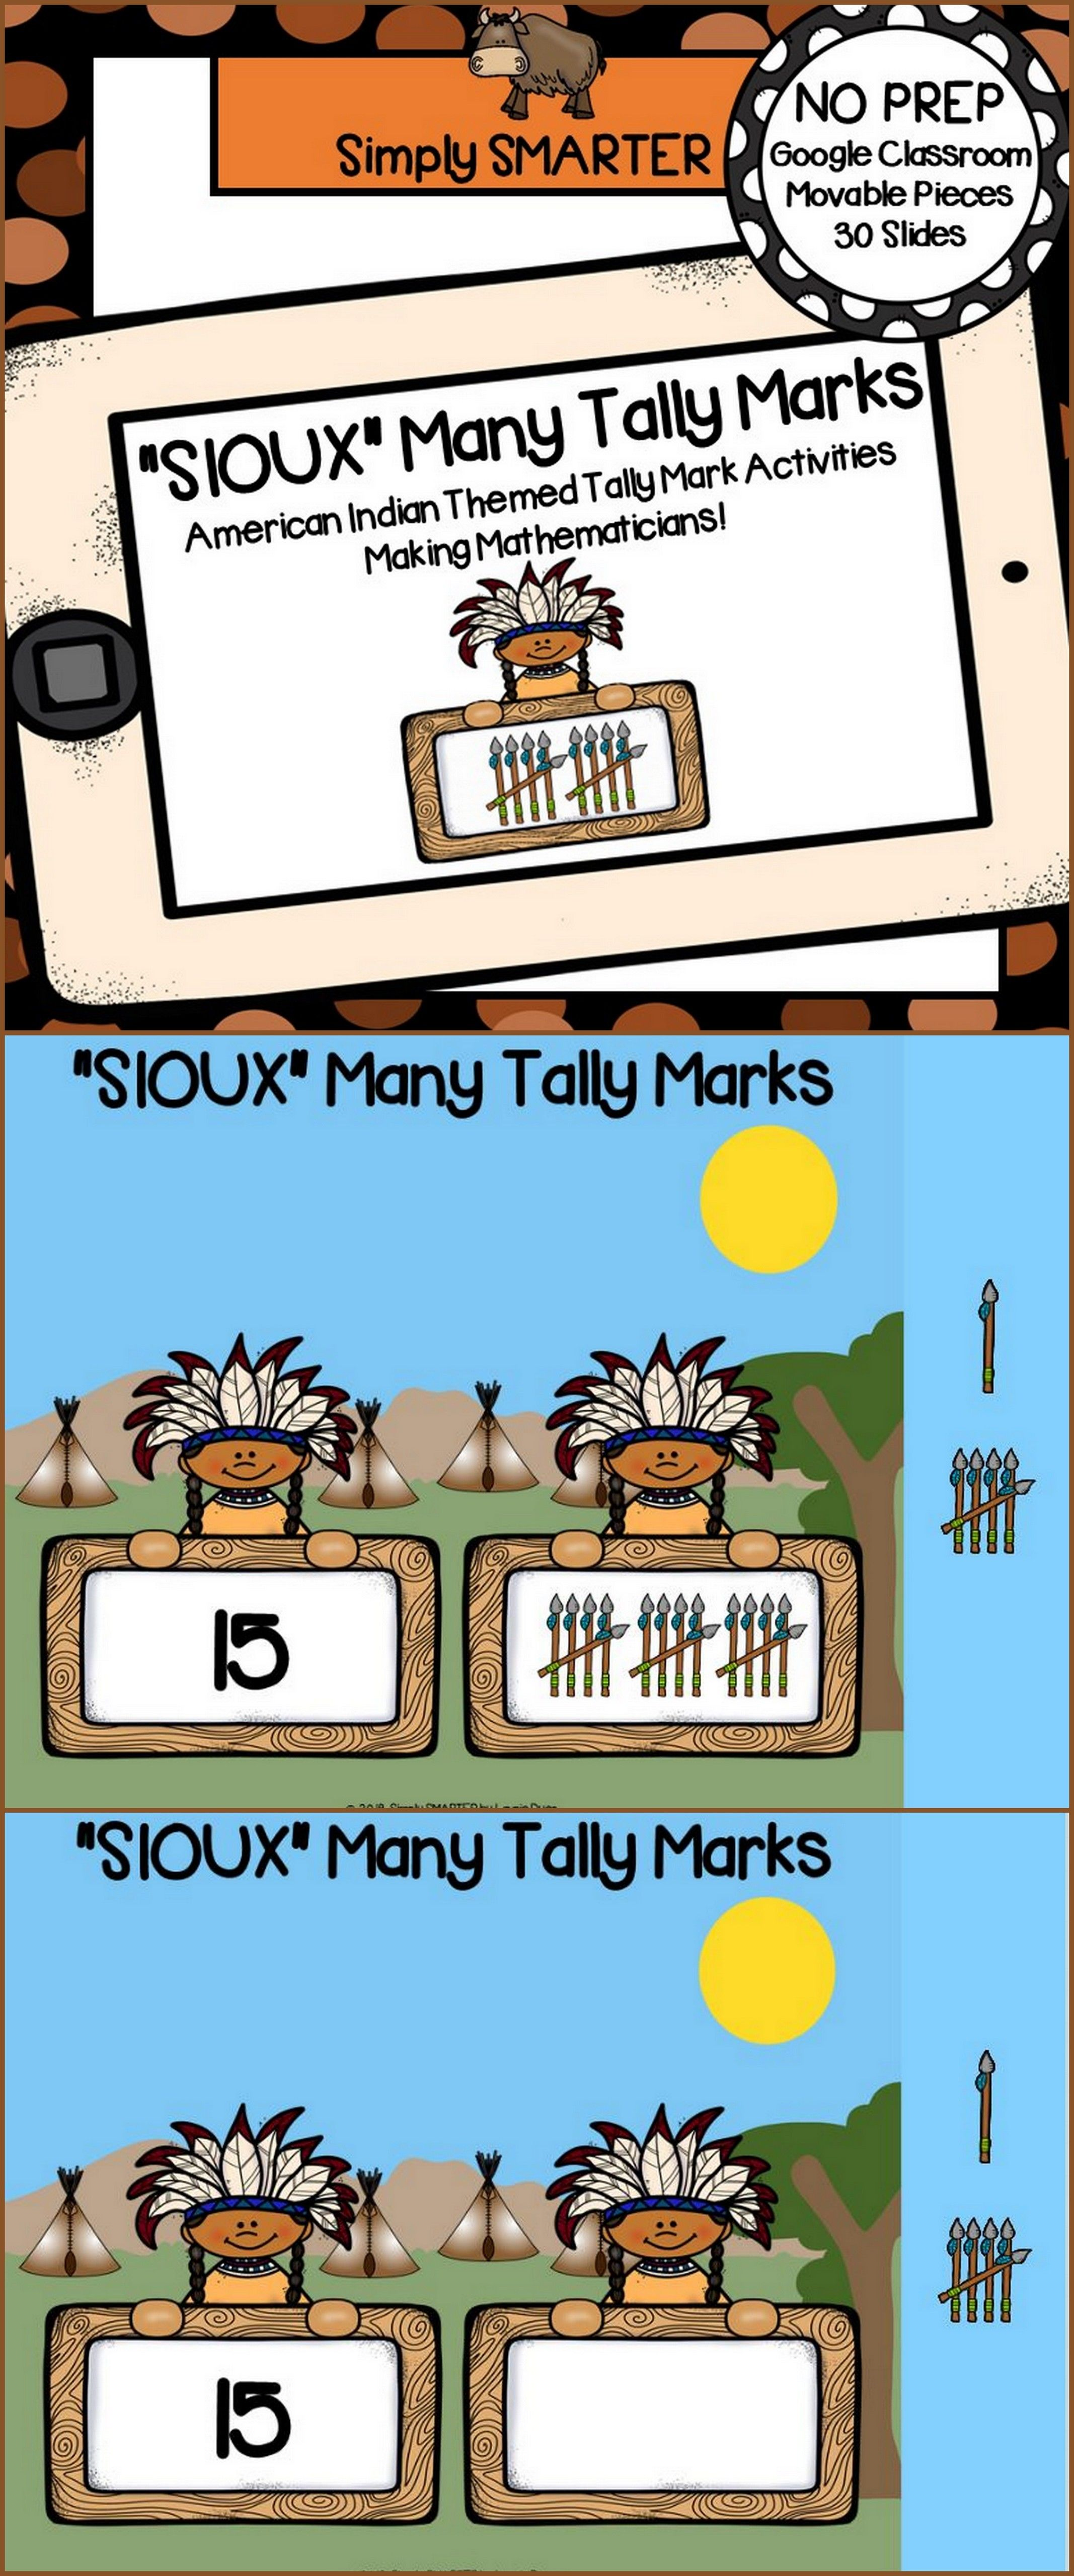 American Indian Themed Tally Mark Activities For